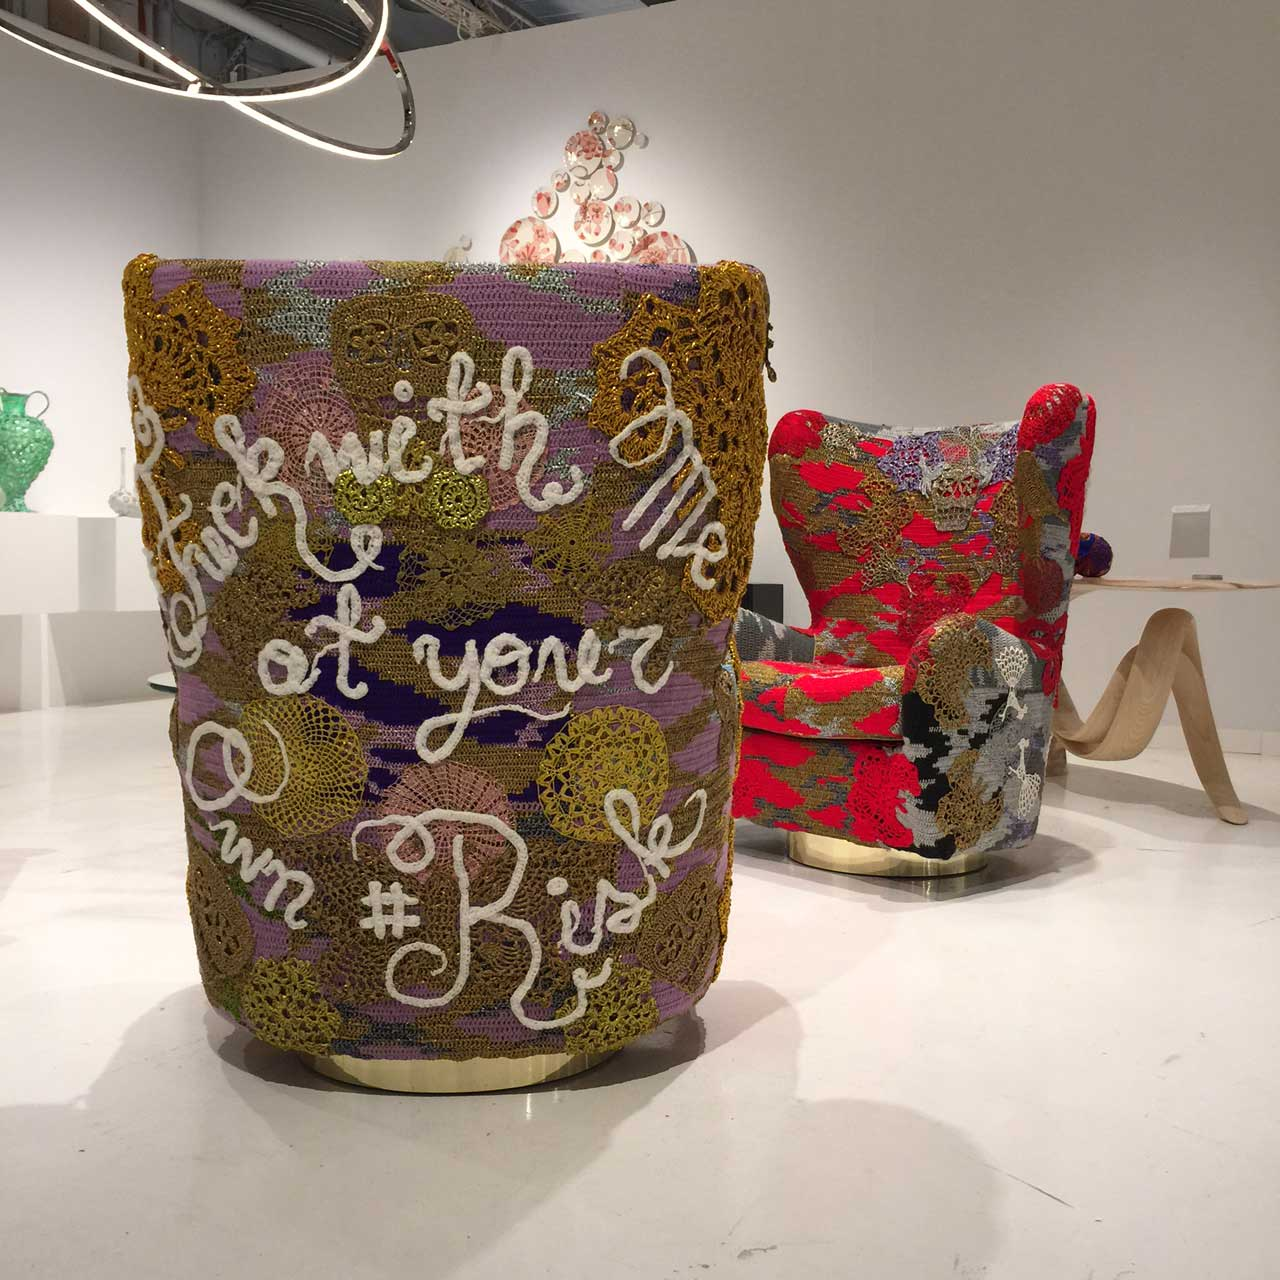 Todd Merrill Custom Originals OLEK at Collective Design Fair | Yellowtrace